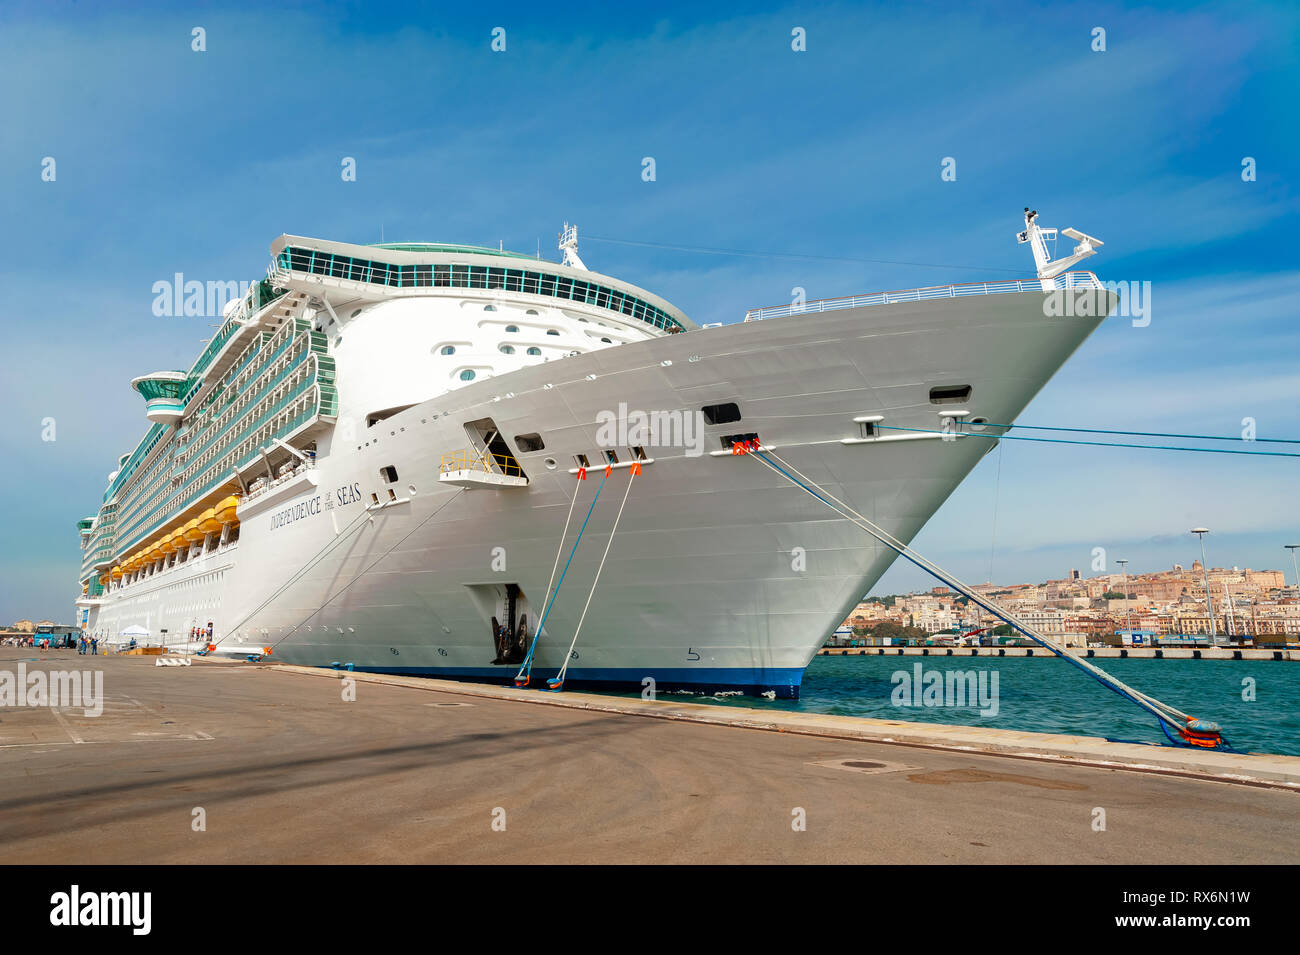 Royal Caribbean Independence of the Seas Cruise Ship in port in Cagliari Sardinia. - Stock Image